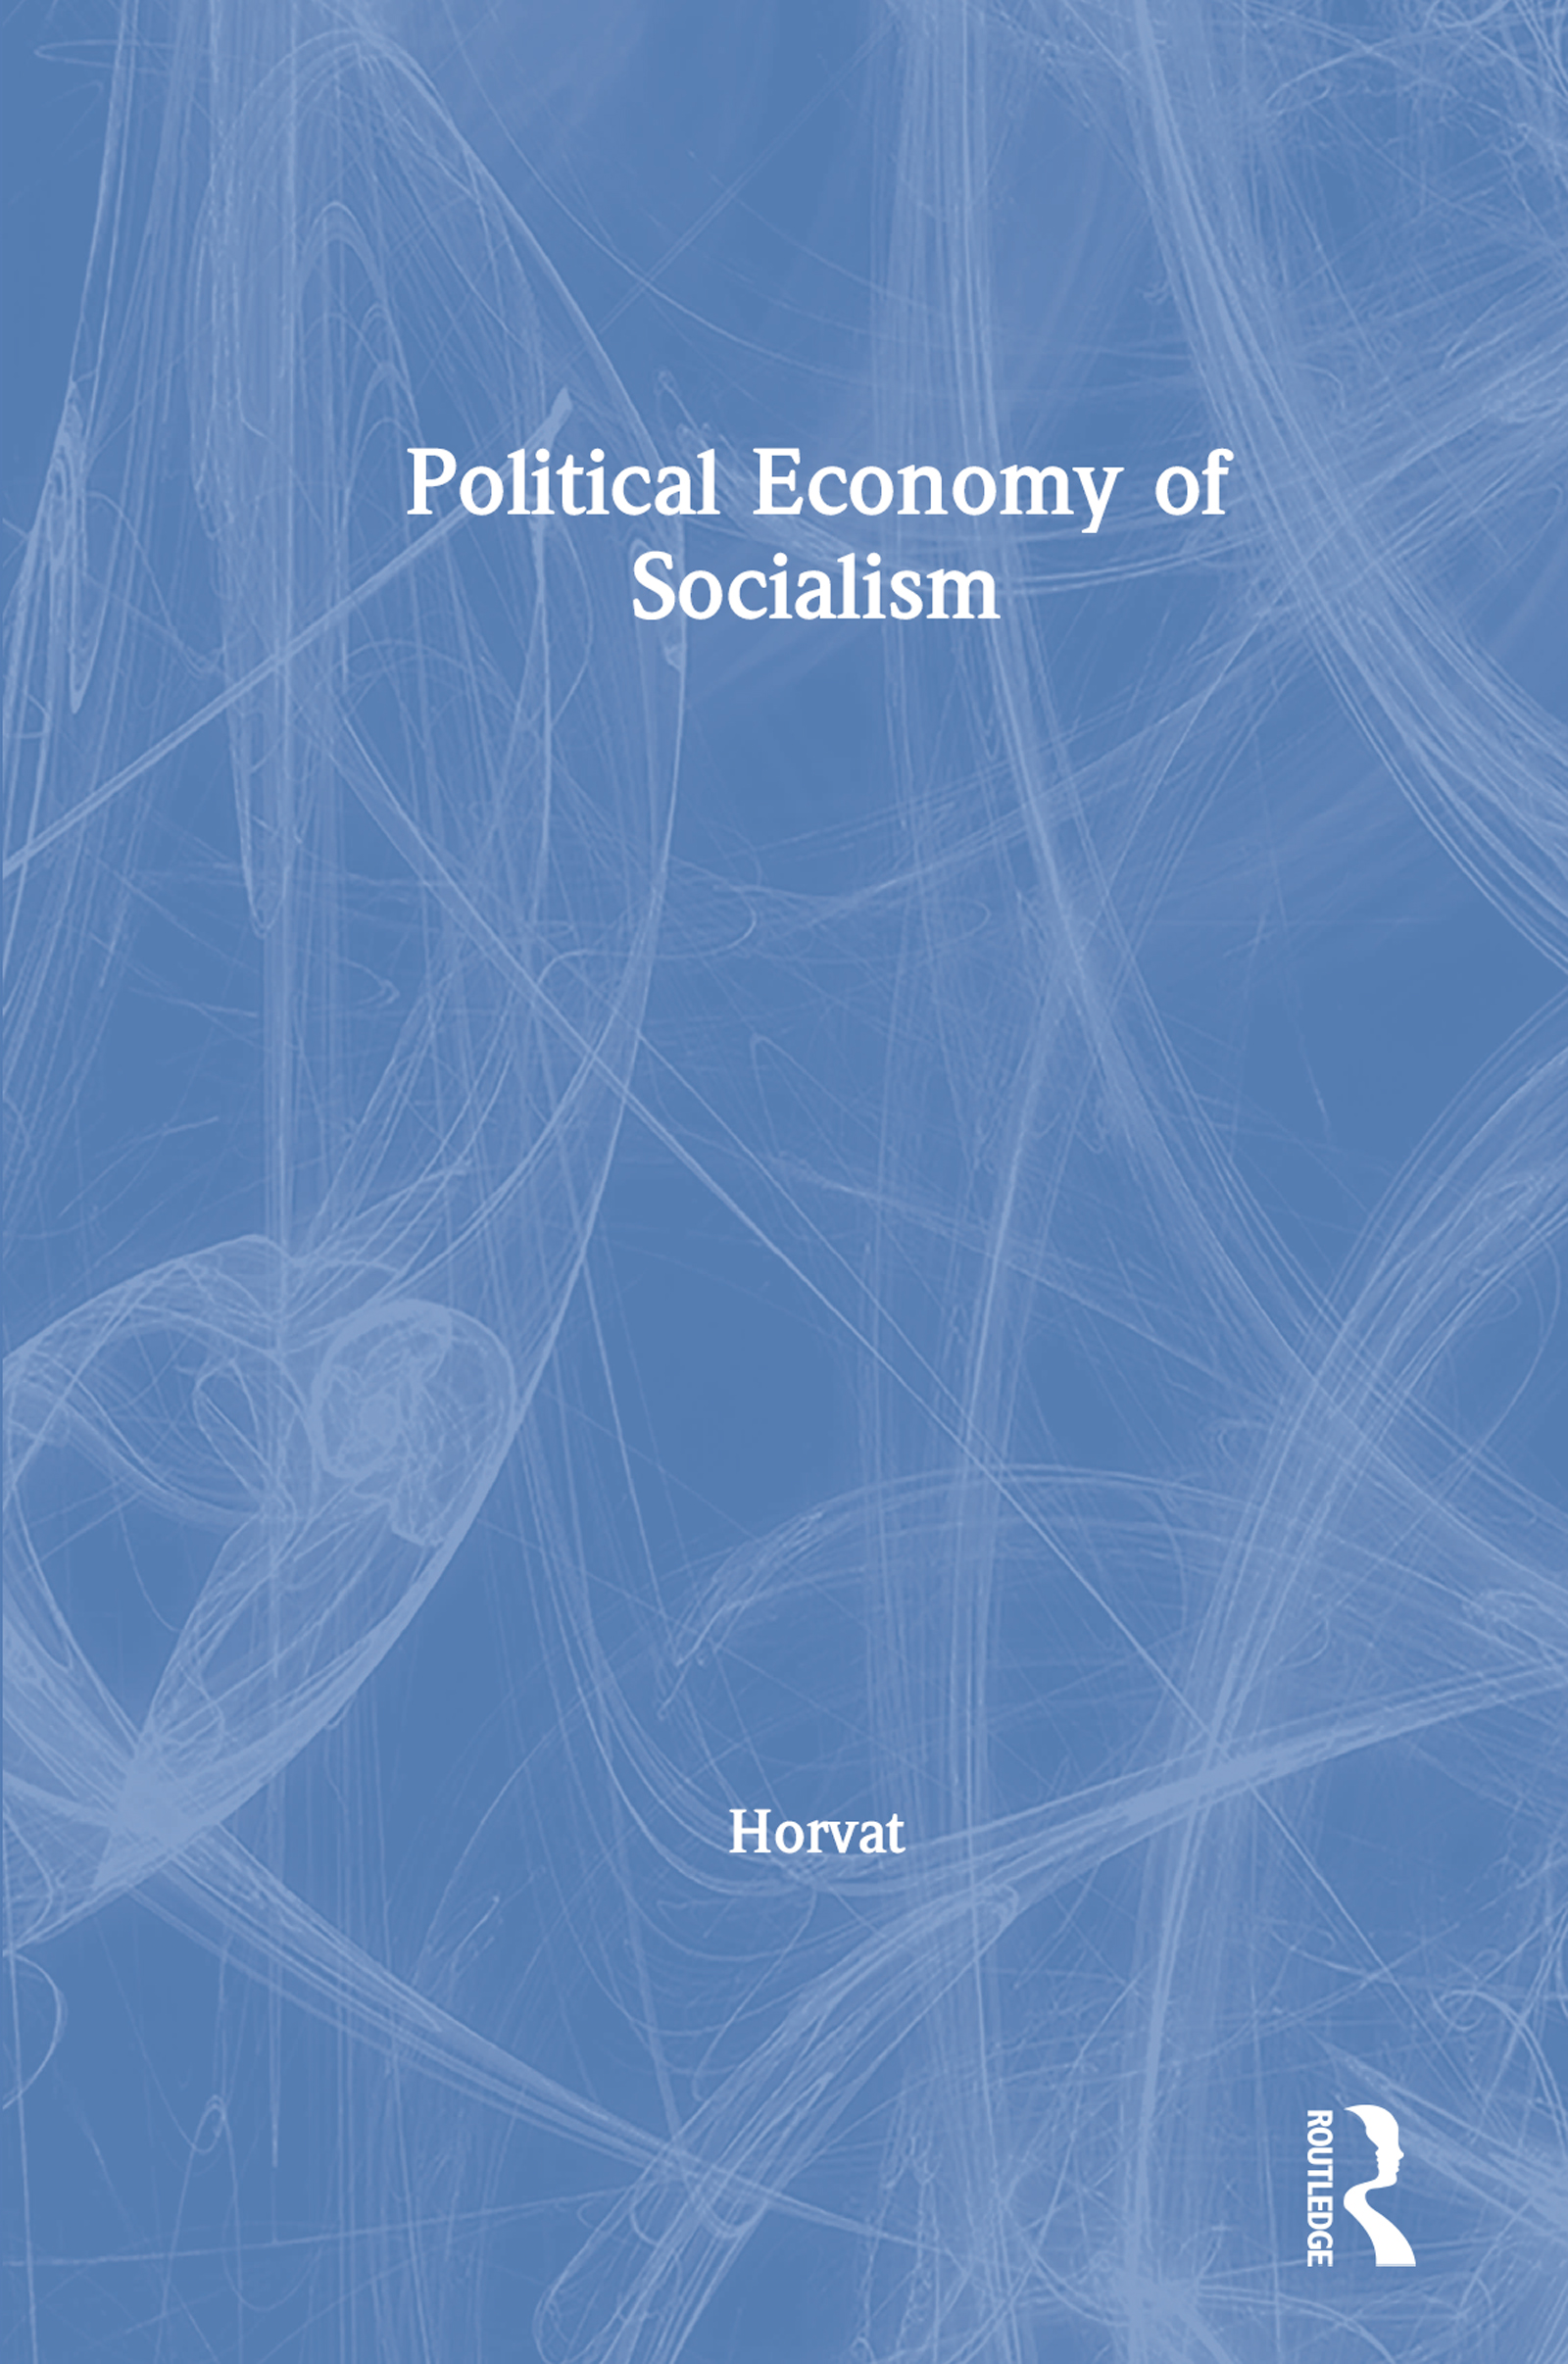 The Political Economy of Socialism